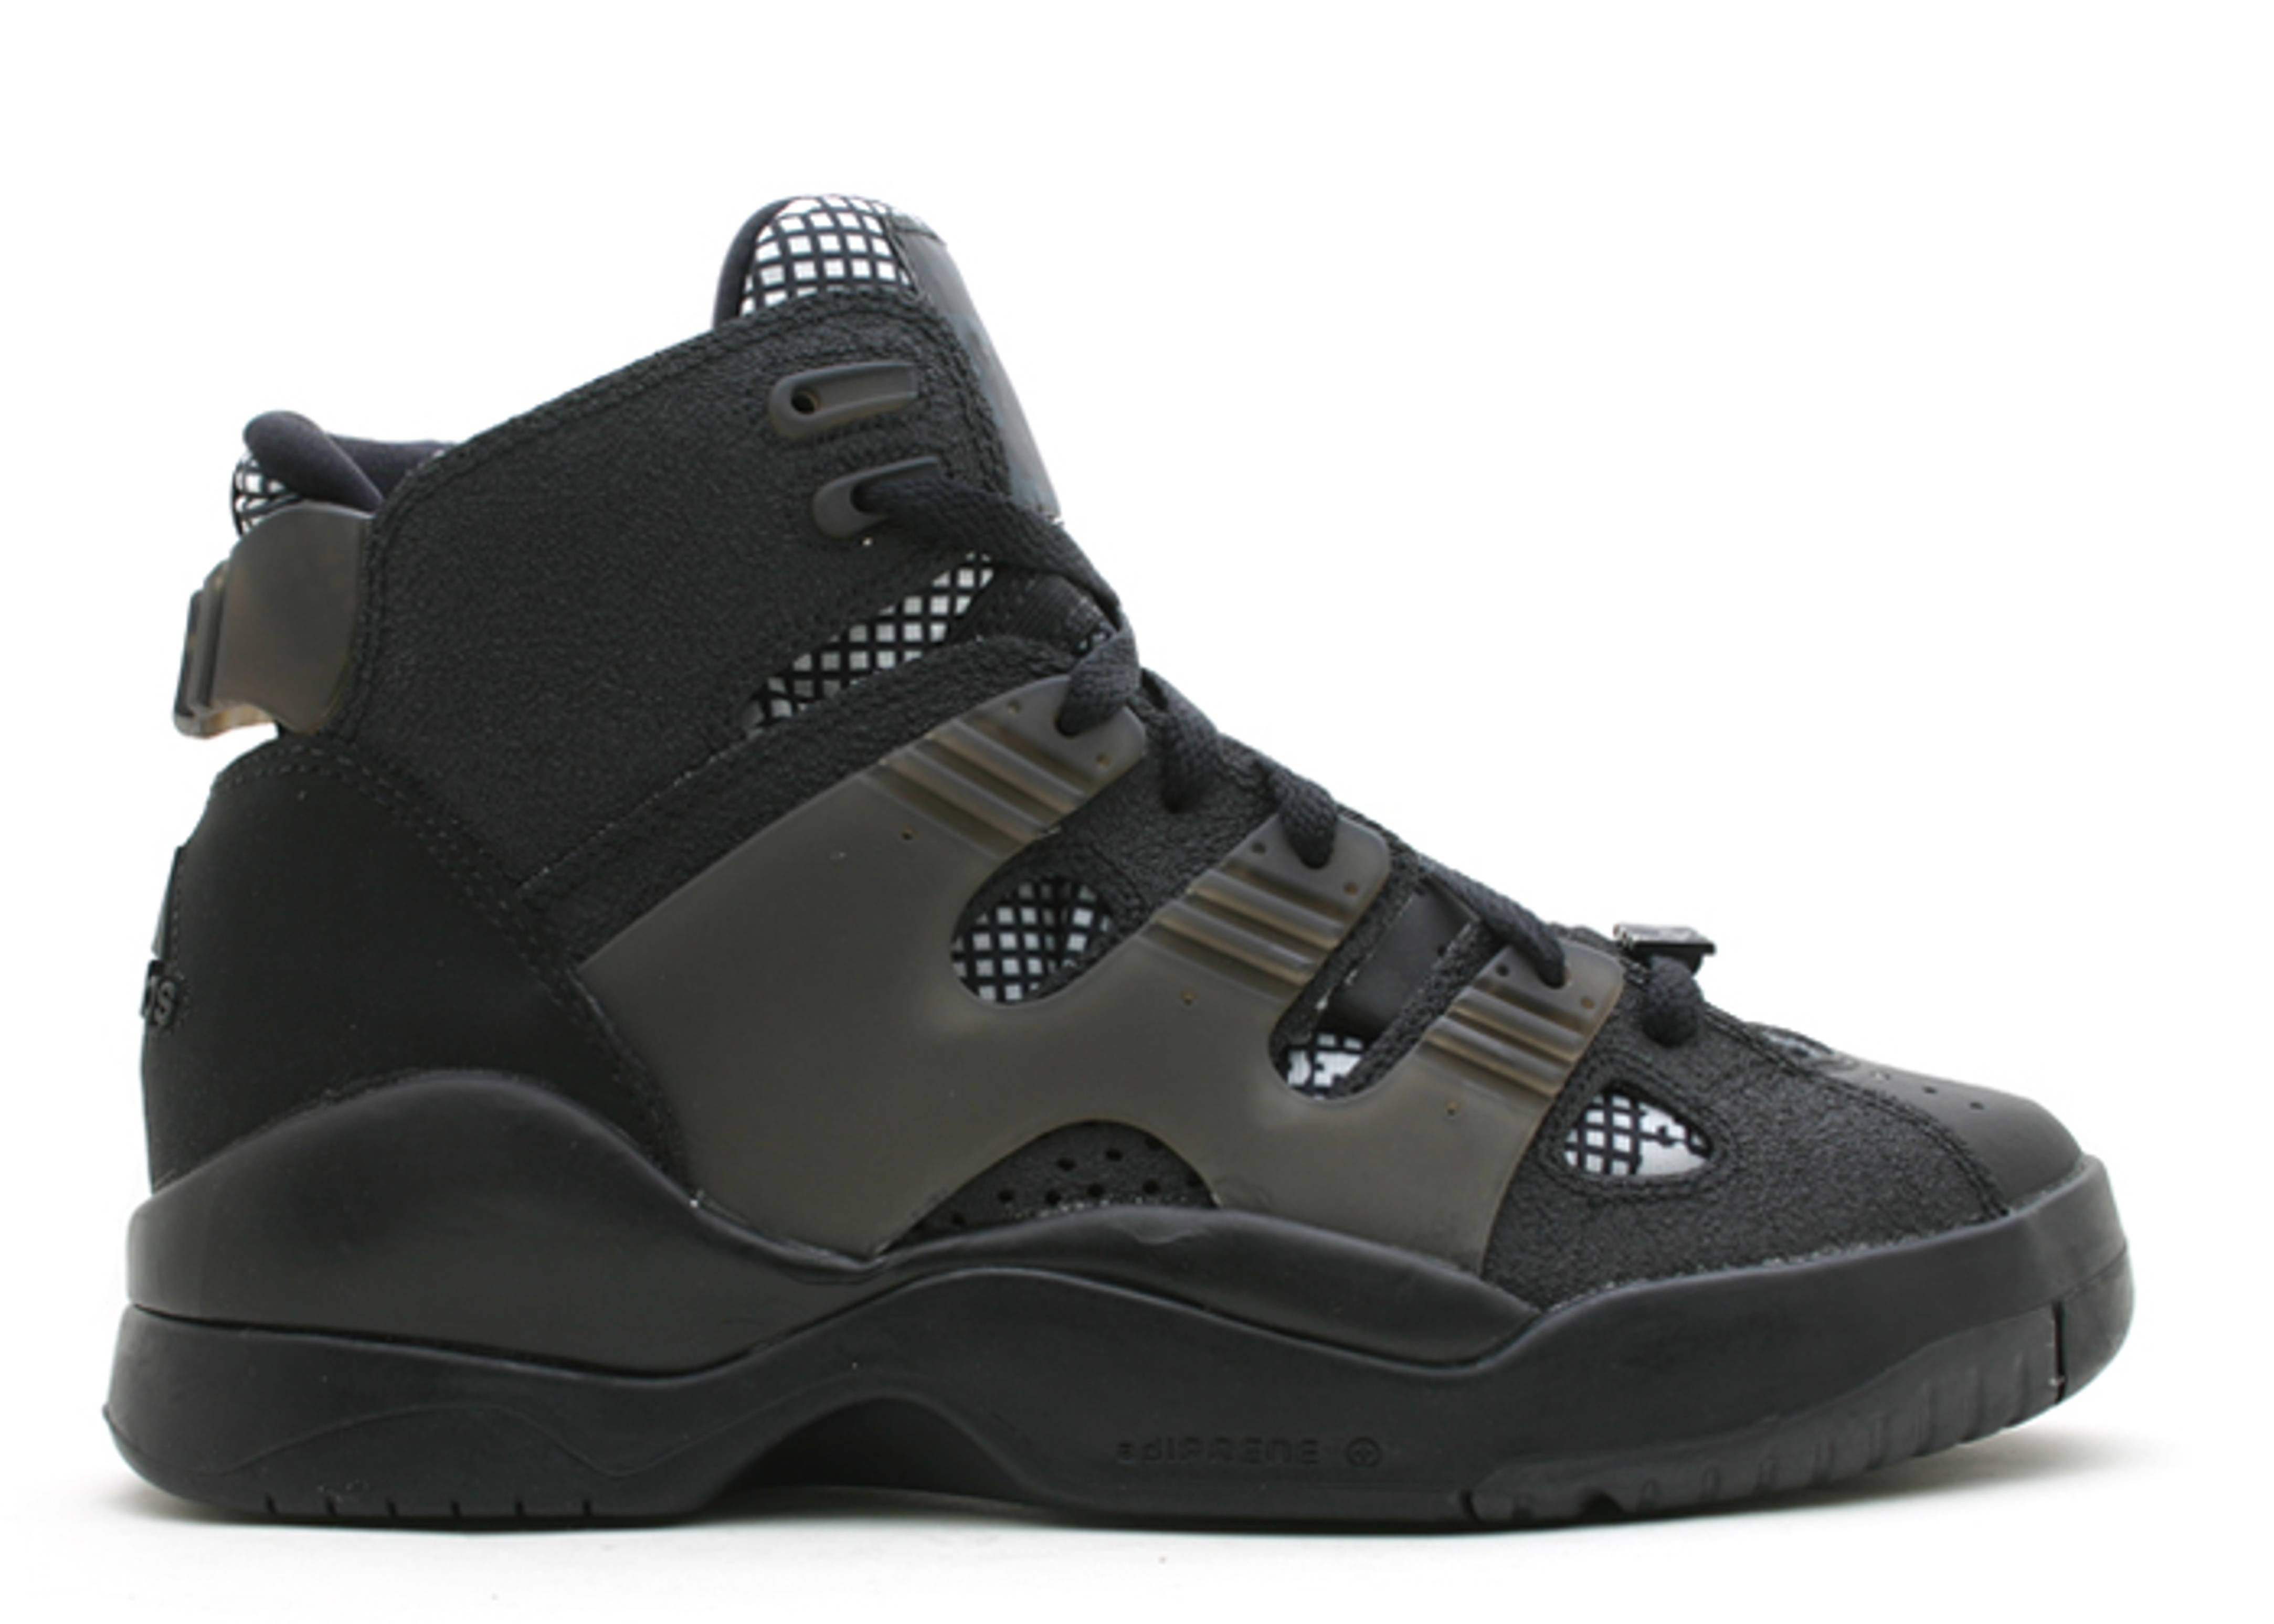 eqt b ball by adidas is back! be87f211ee